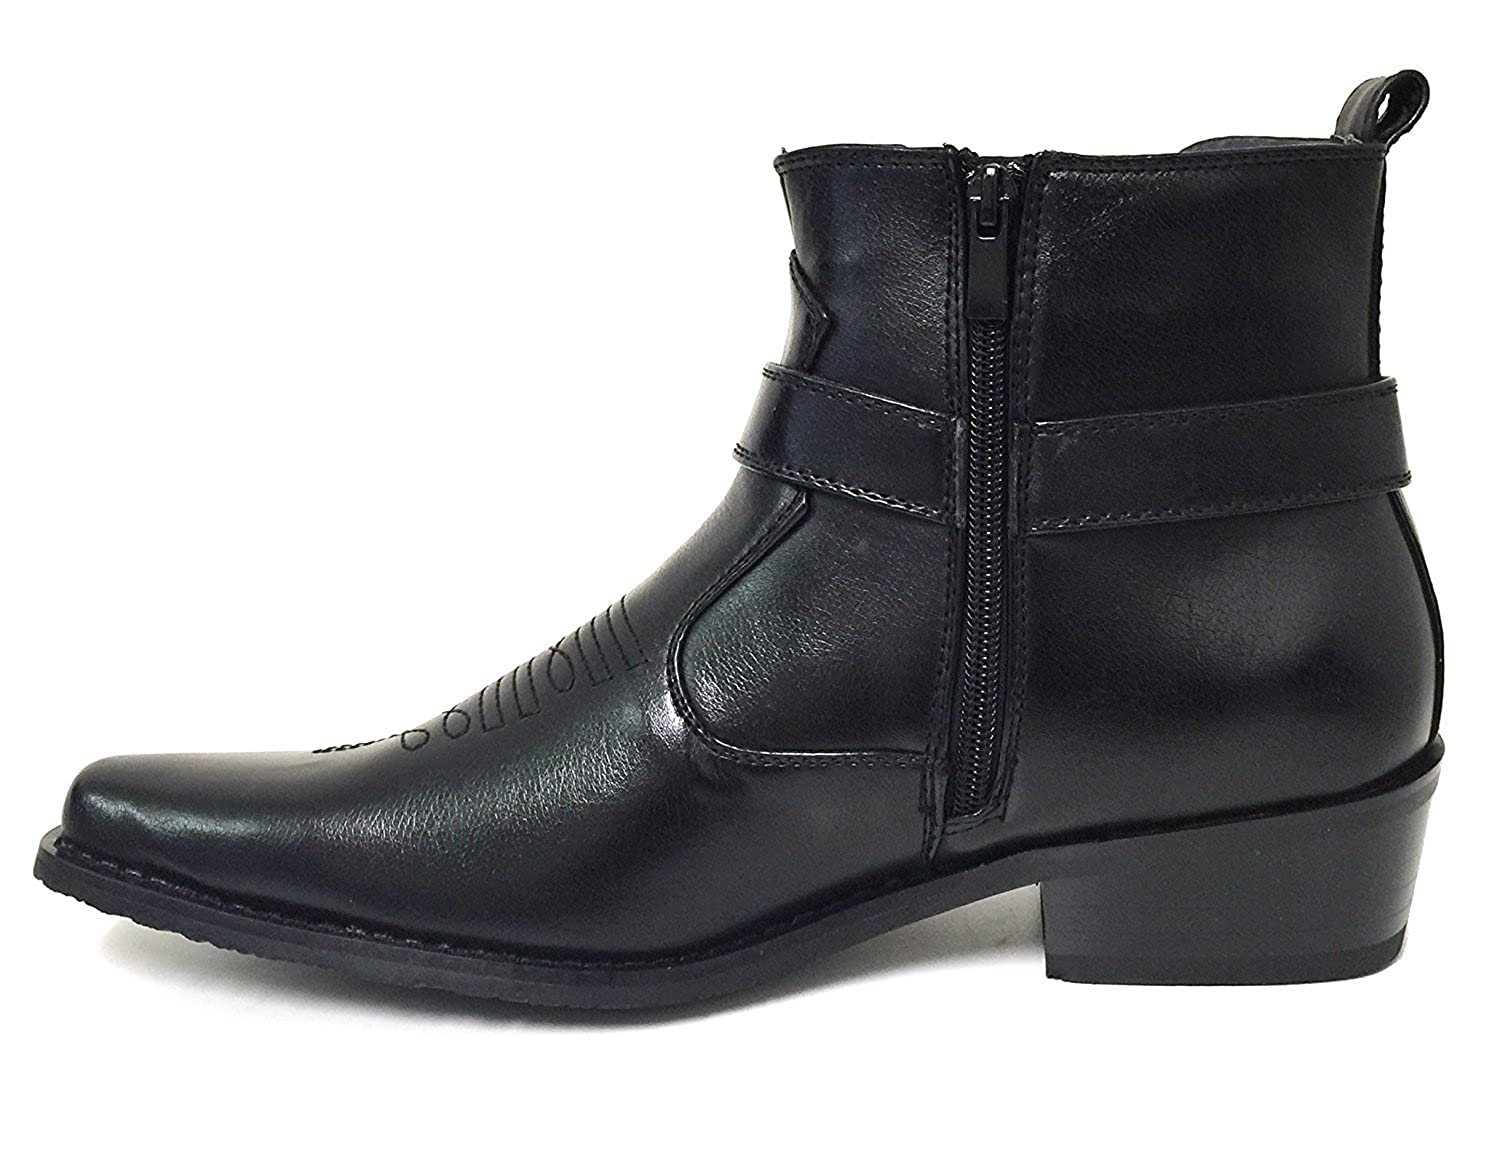 Alberto Fellini W1TCJ Men/'s Cowboy Boots Western Ankle Harness Leather Lining Side Zipper Shoes